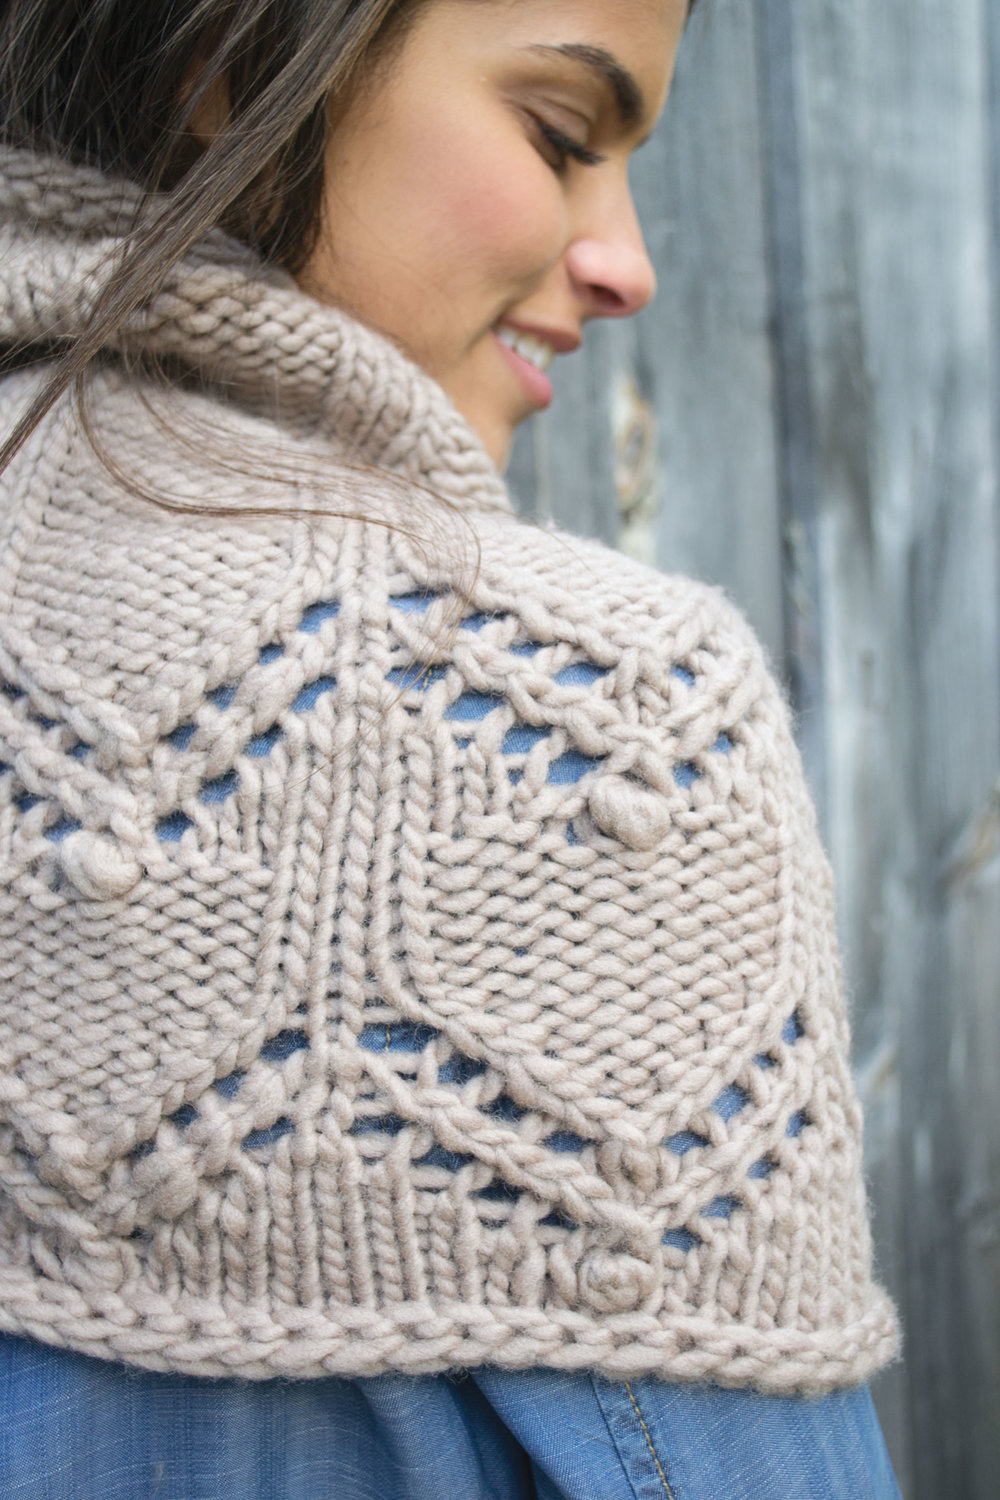 MAINE knits Pattern Spotlight: Astrantia Cowl — Thread & Ladle